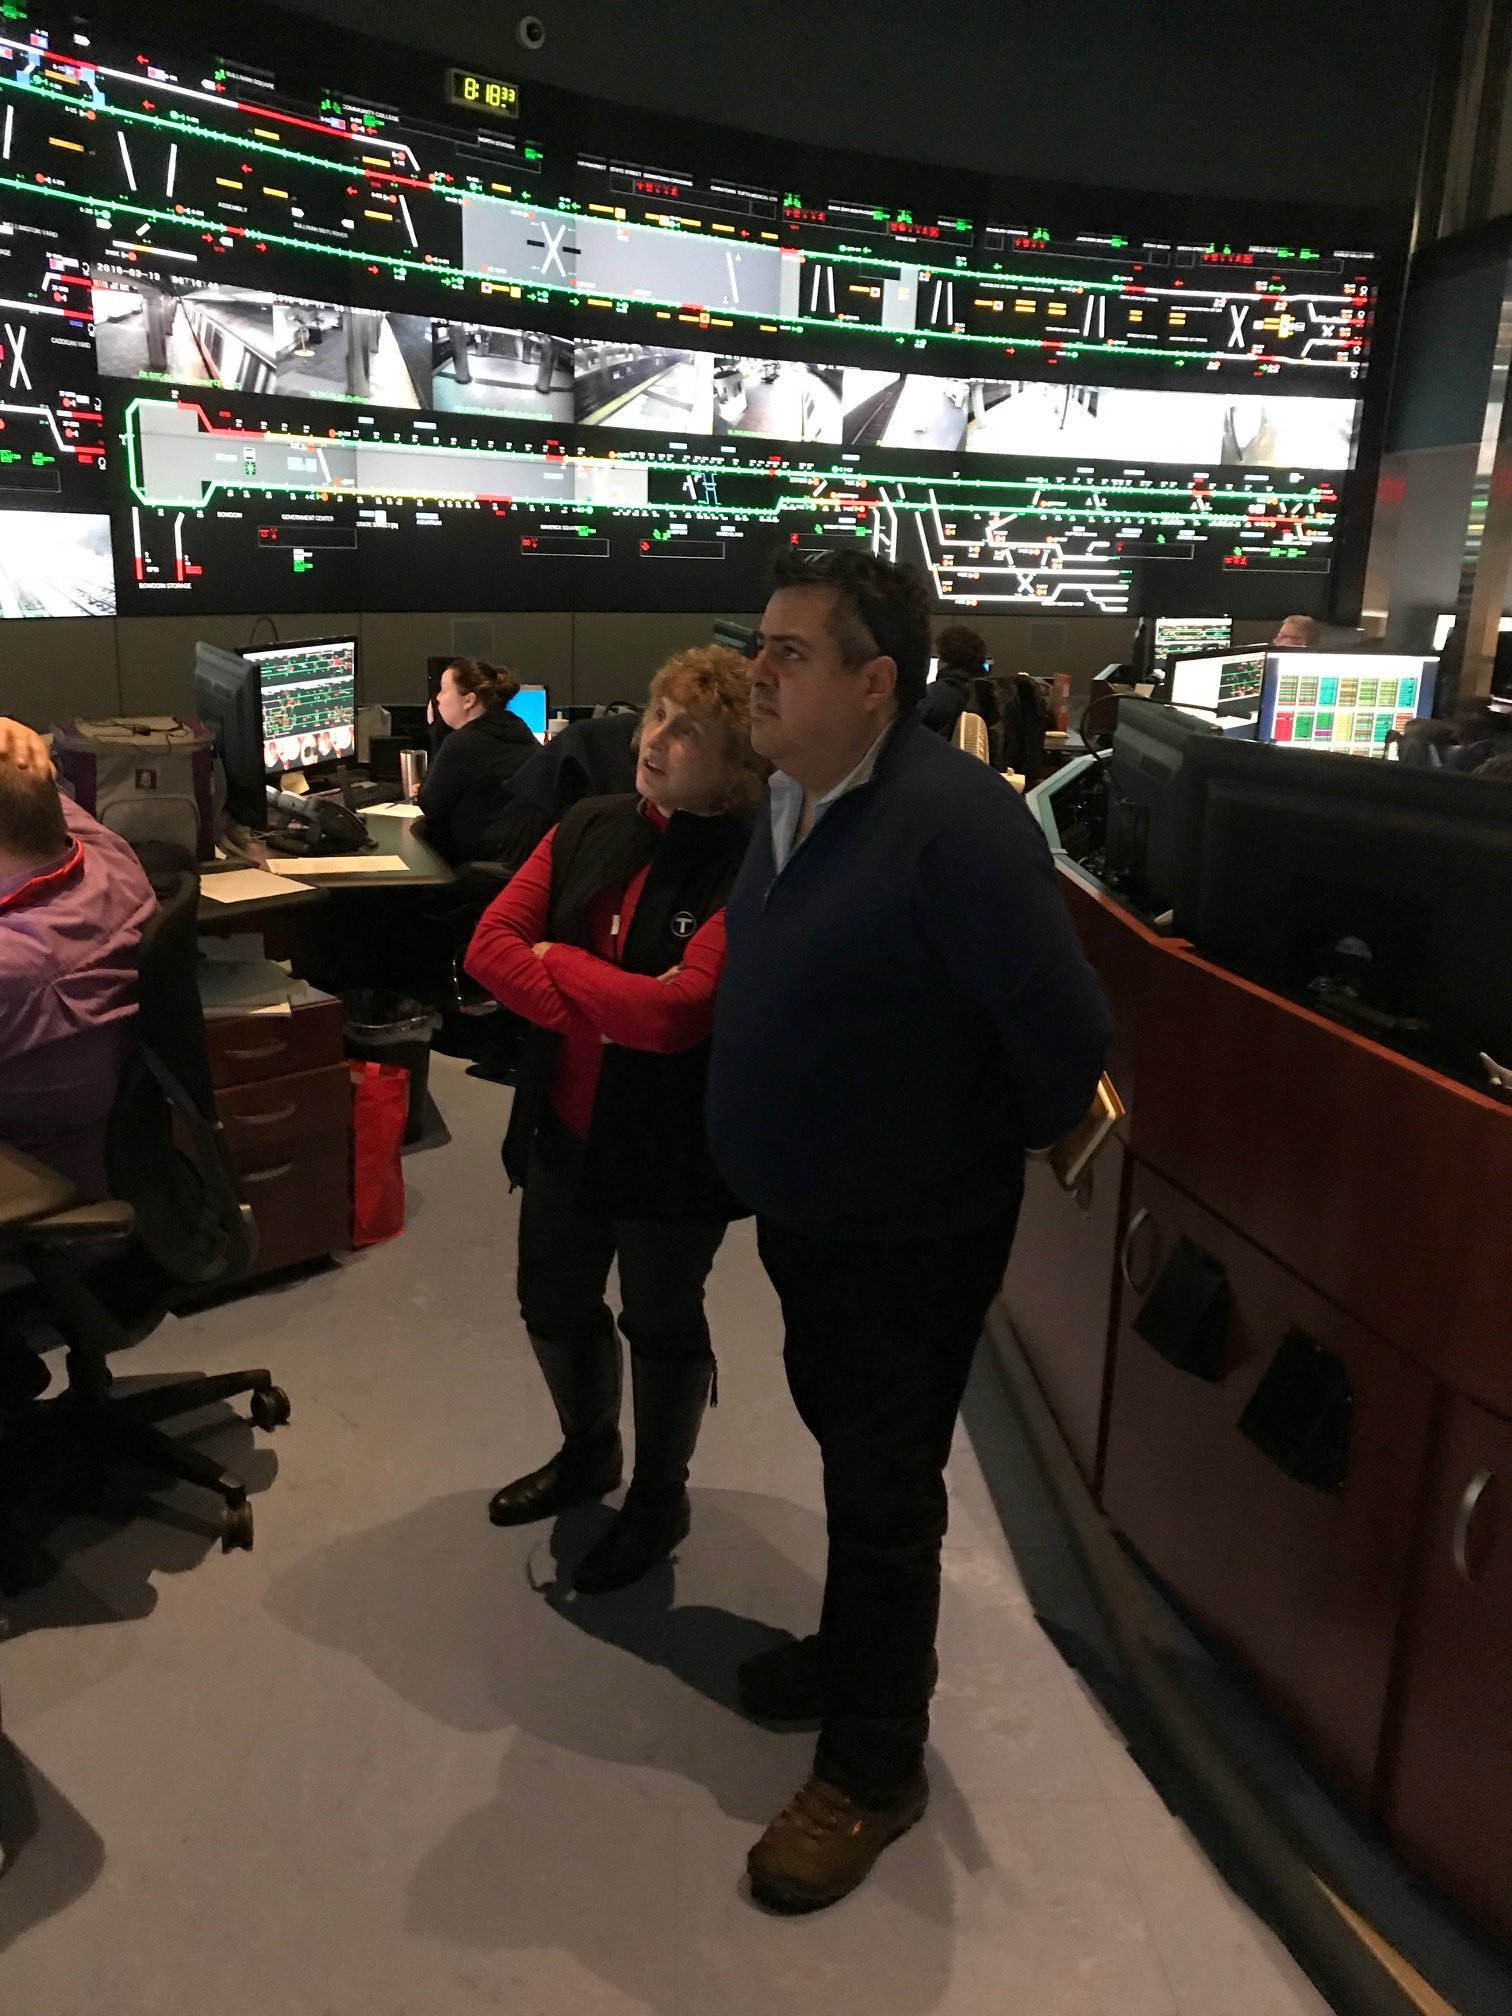 On Tuesday morning, MassDOT Secretary Stephanie Pollack and MBTA General Manager Luis Manuel Ramírez stand together, monitoring the screens at the Operating Control Center.